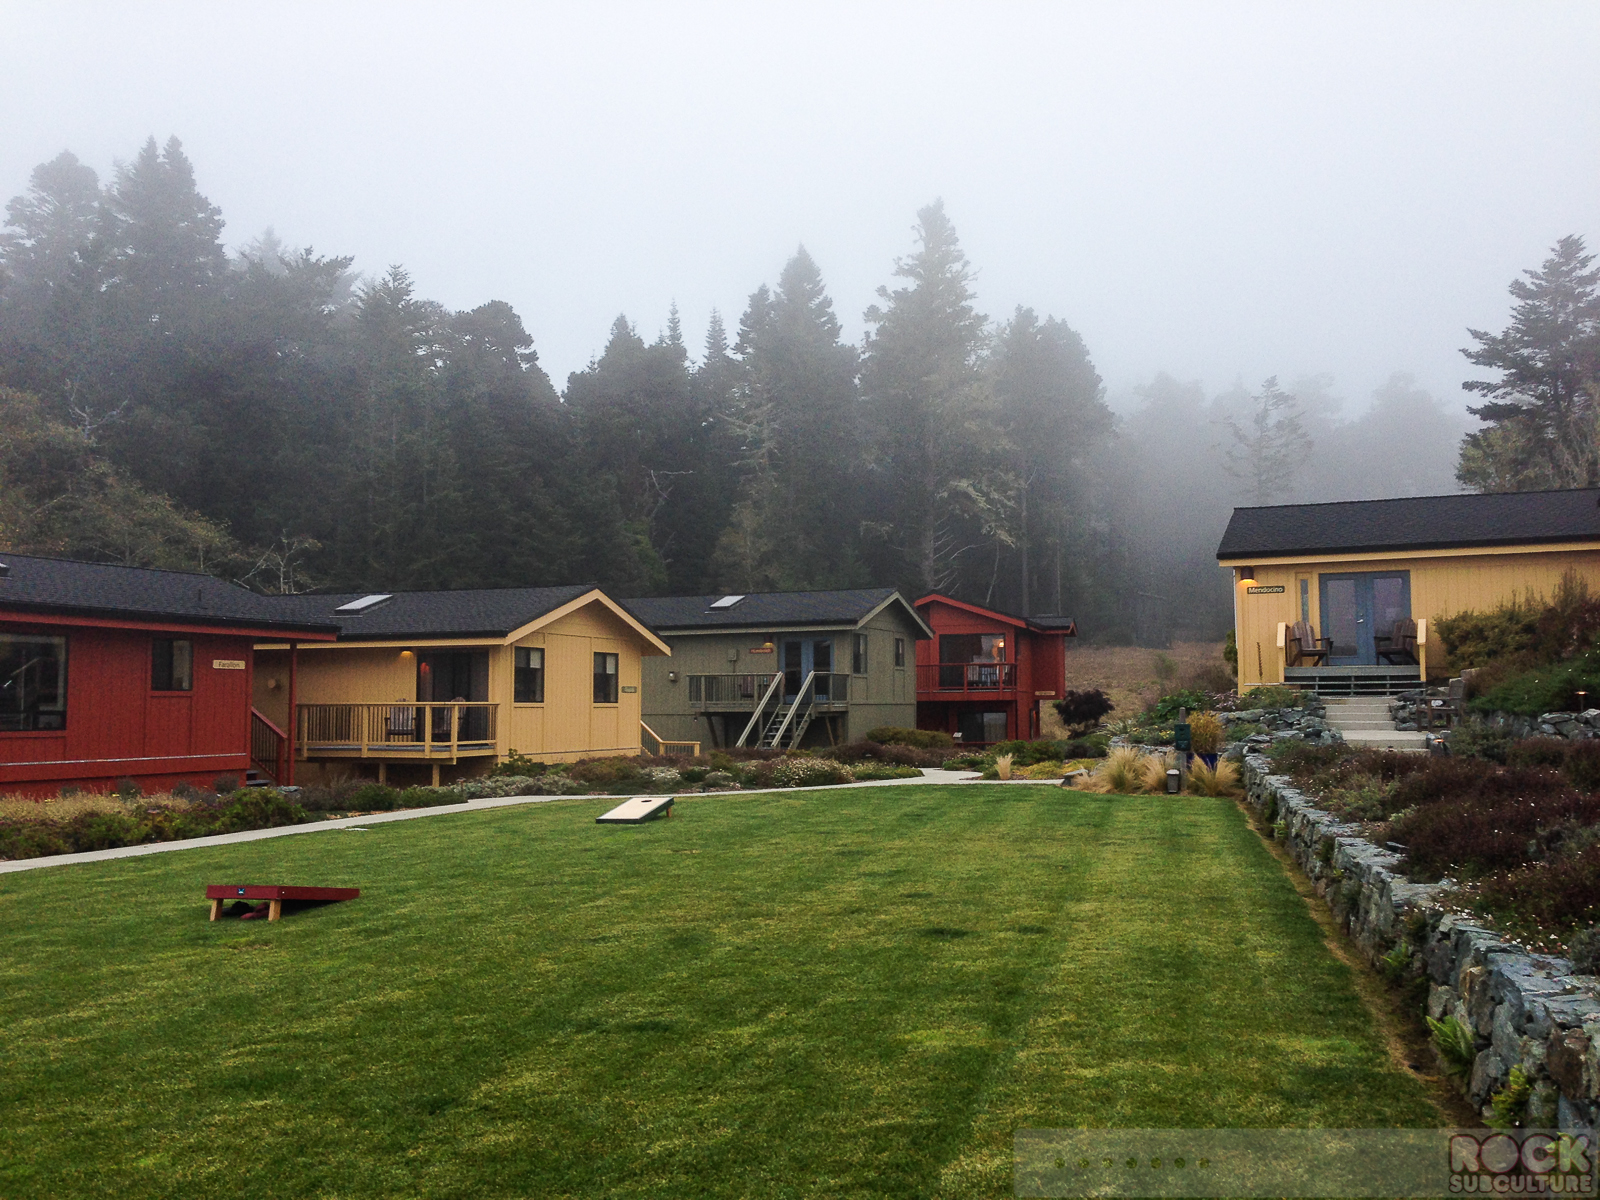 Mendocino Coast Hotels And Resorts On The Northern